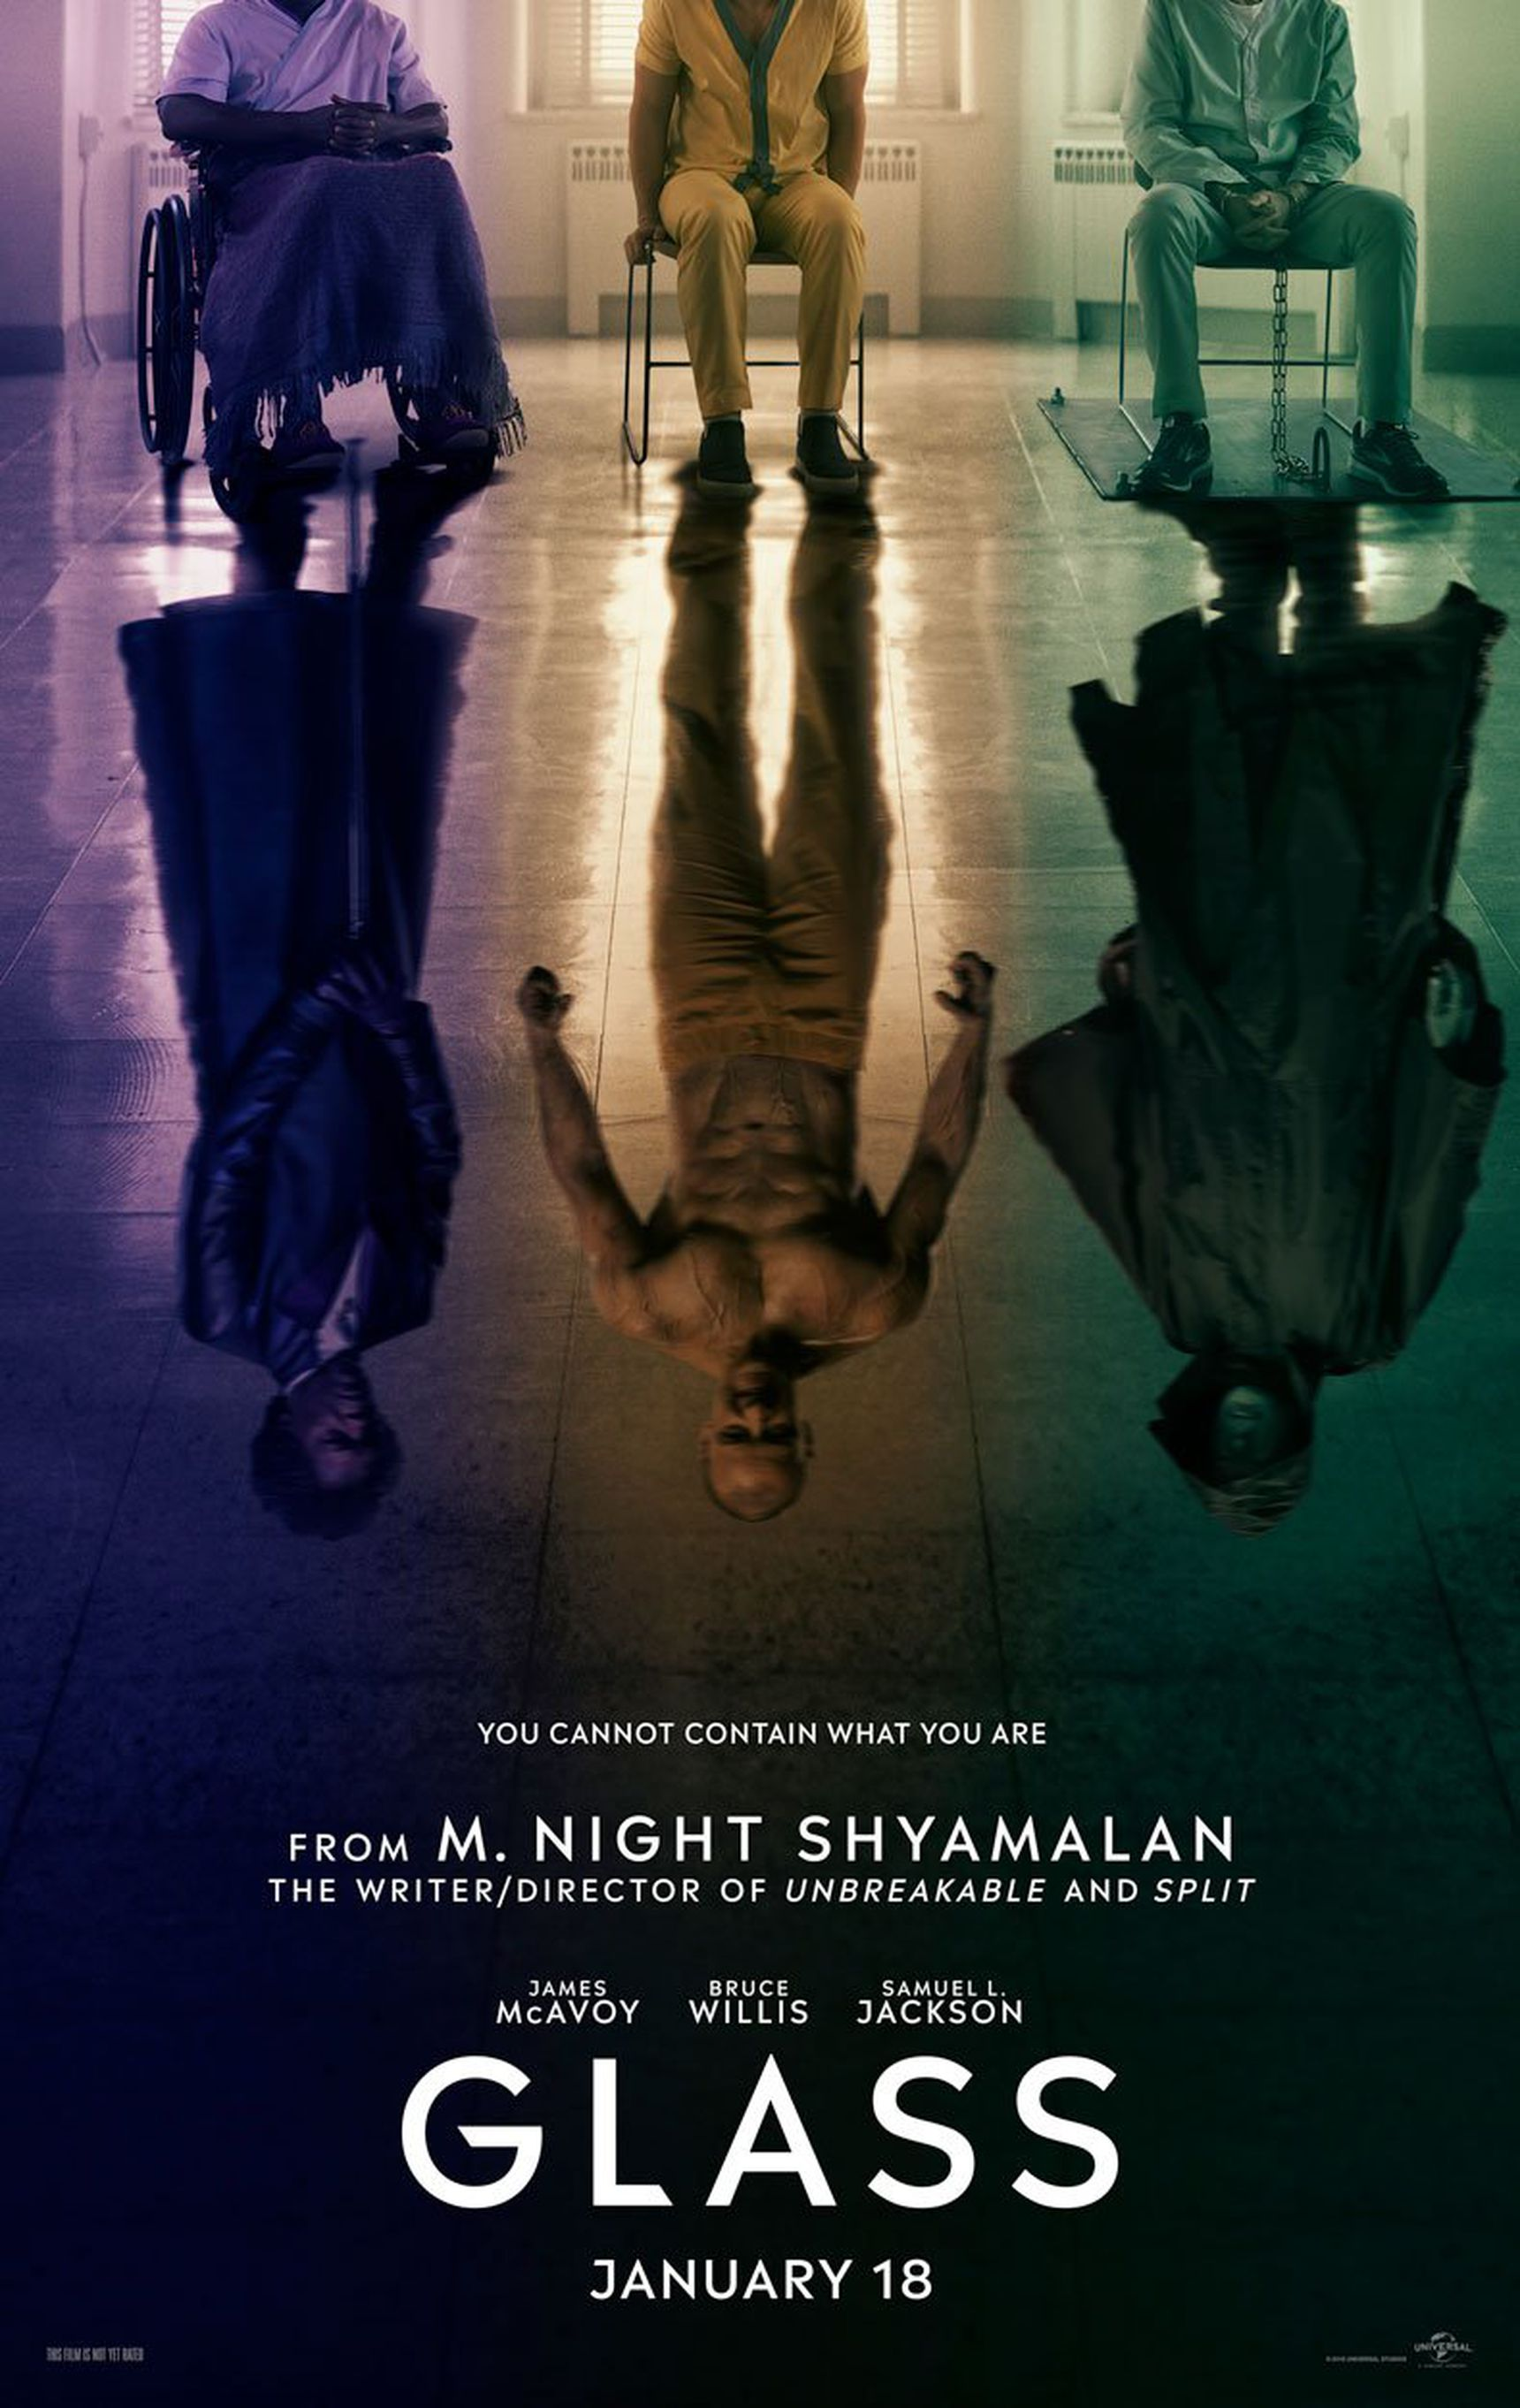 Inside The Screen Colour Explained By M. Night Shyamalan 1